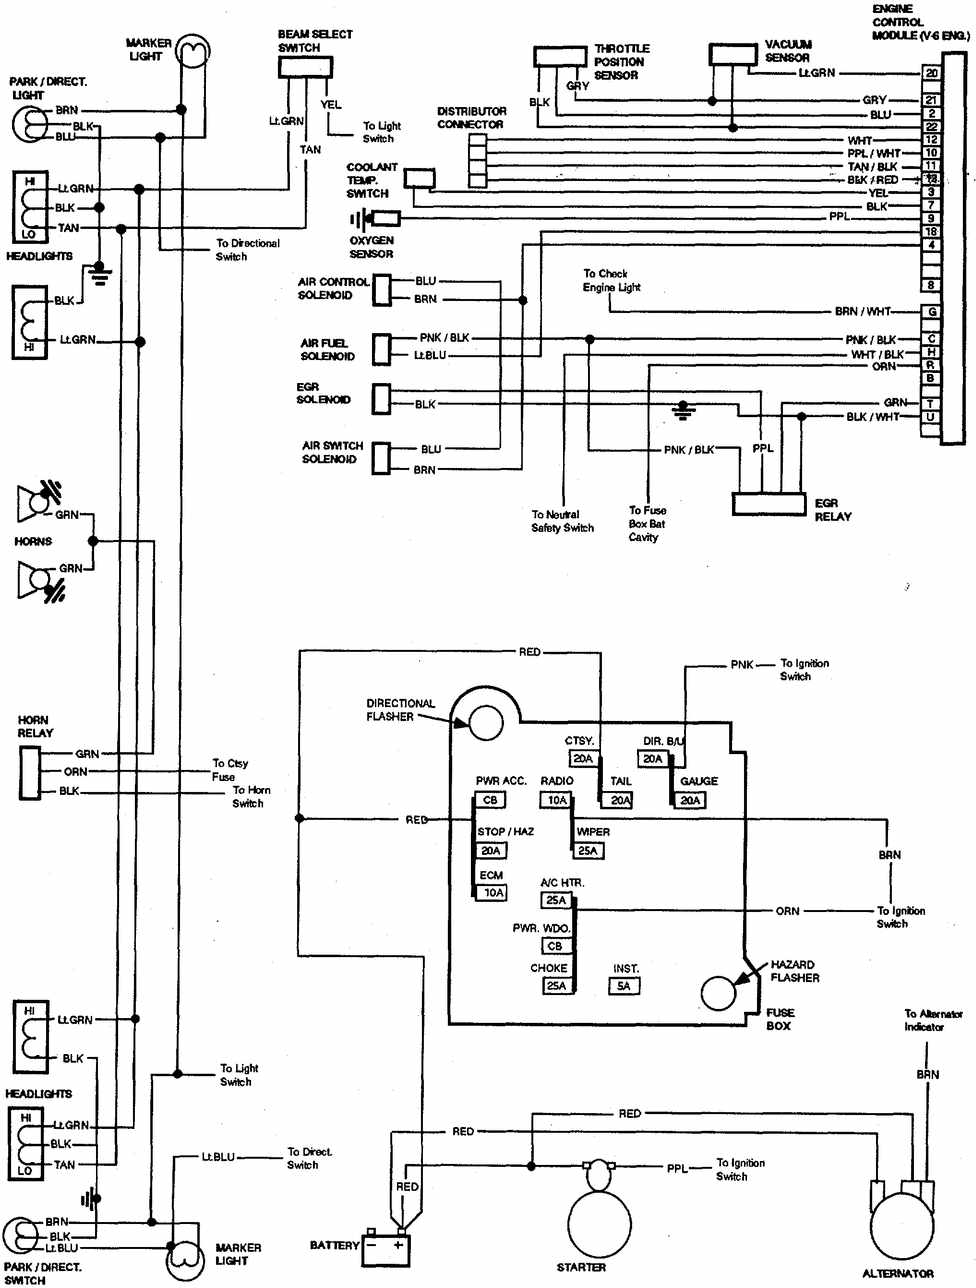 Chevrolet+V8+Trucks+1981 1987+Electrical+Wiring+Diagram?resize\\\\\\\=665%2C878 heil 7000 wiring diagram free staruml tutorial sequence diagram